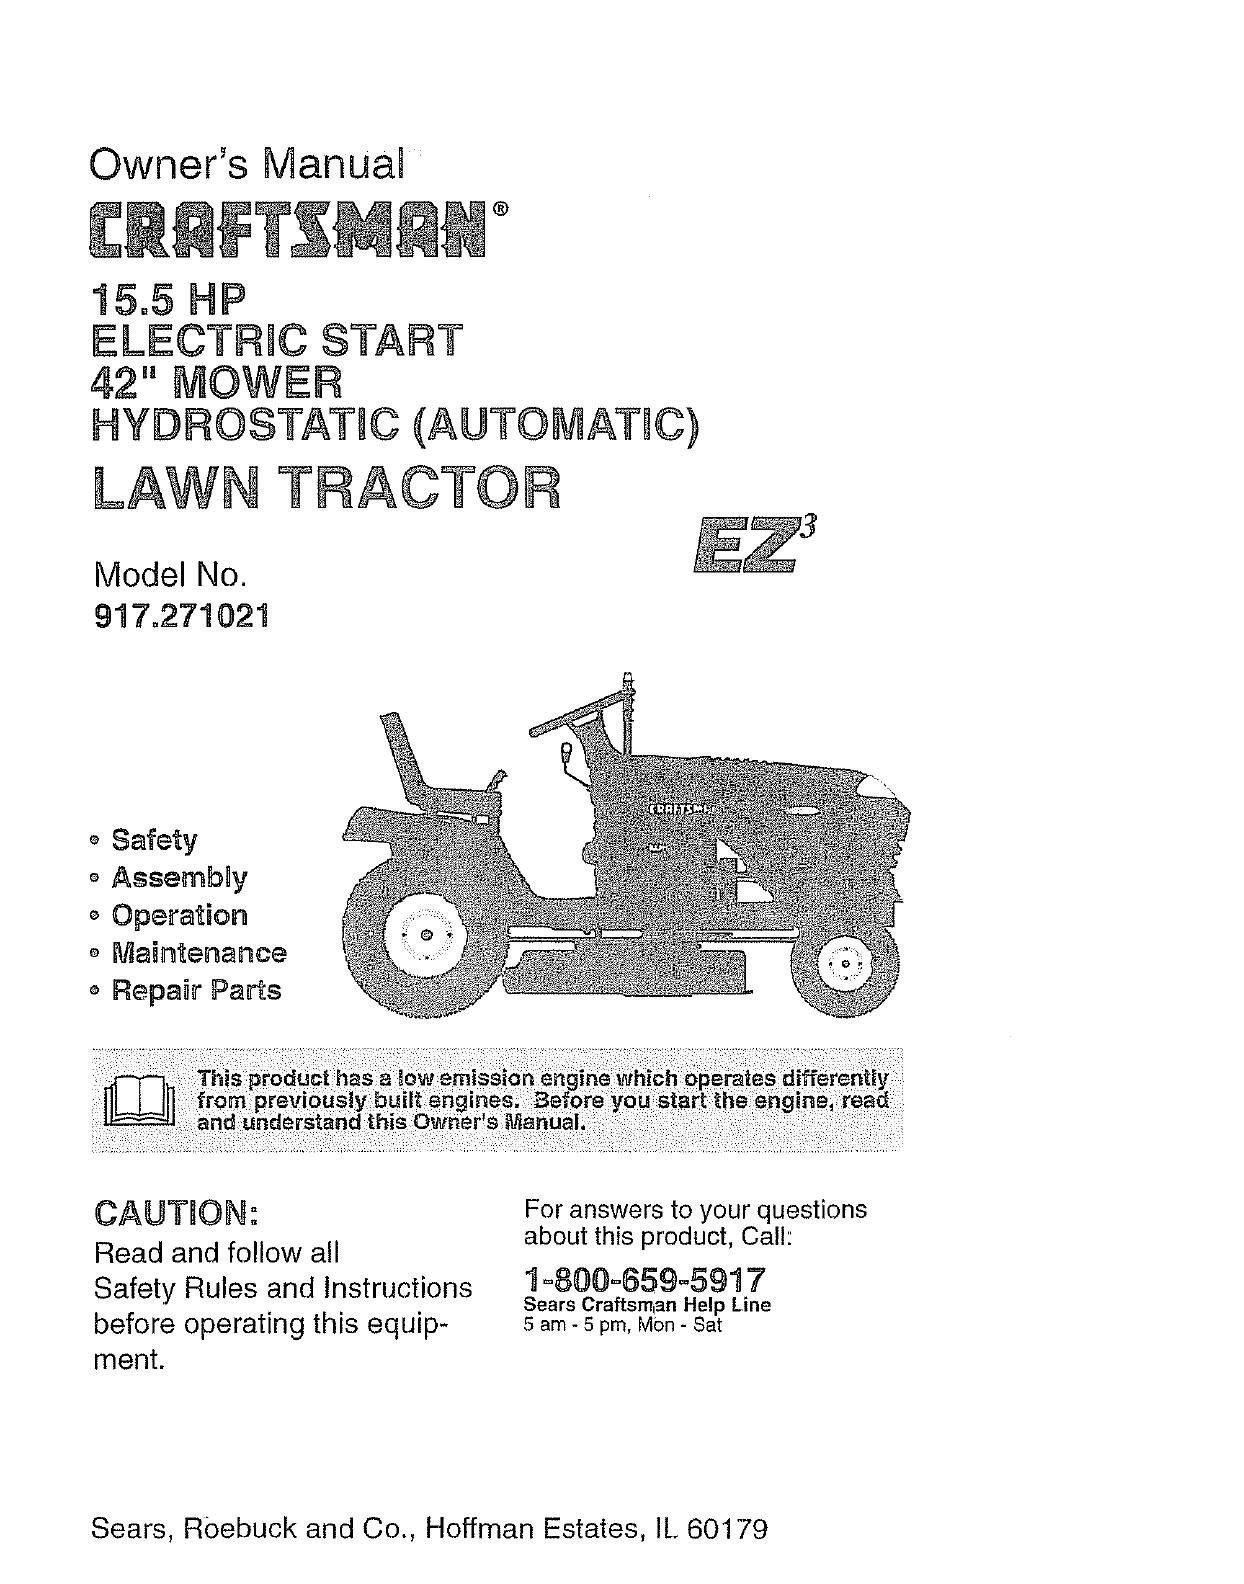 Craftsman 917271021 User Manual TRACTOR Manuals And Guides L0806846UserManual.wiki